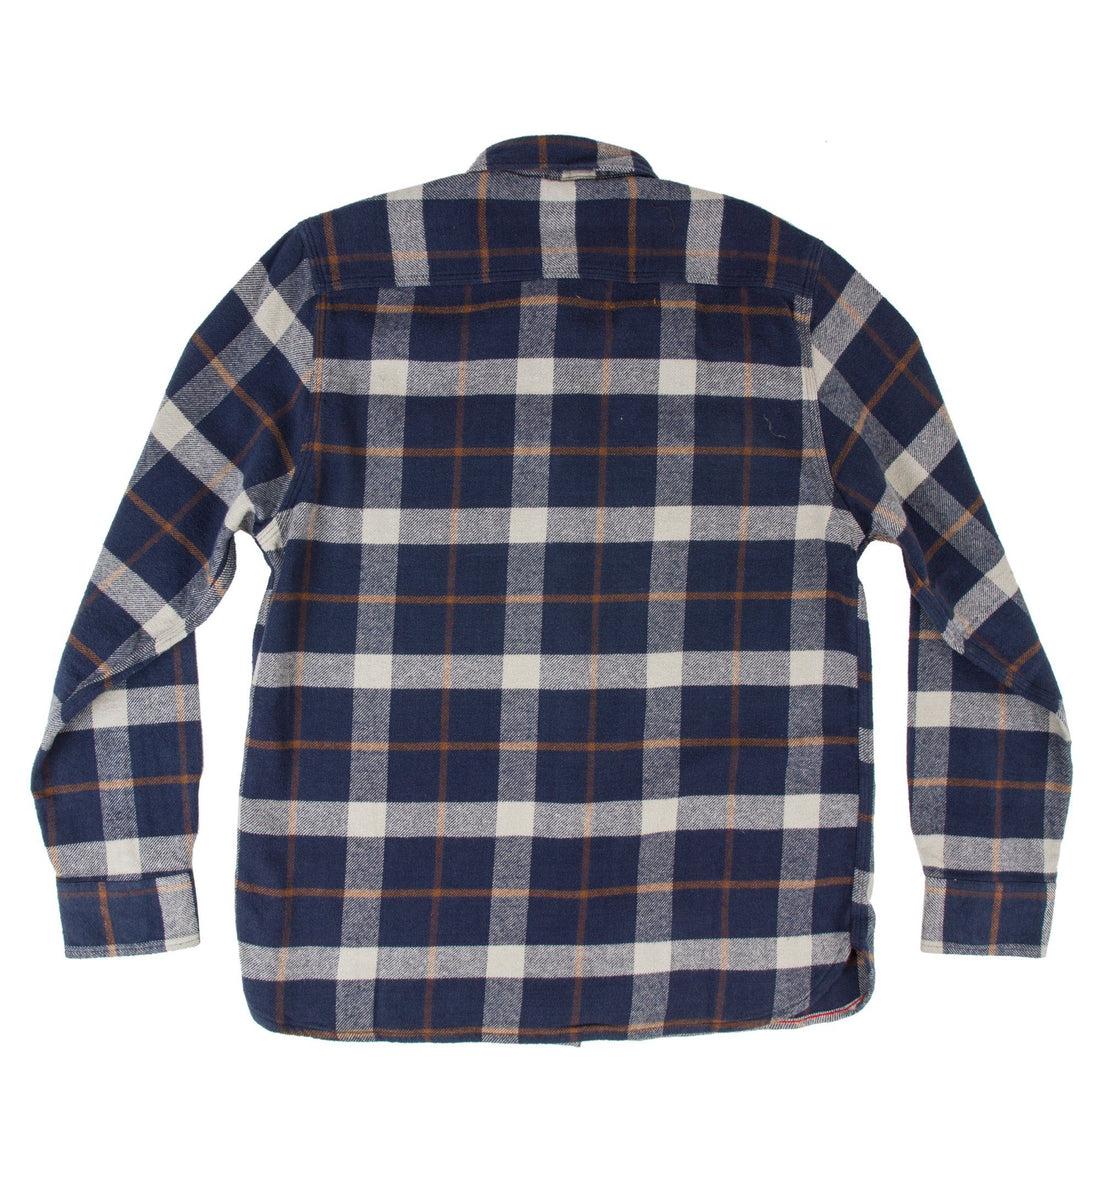 Womens No Iron Flannel Shirts Rldm